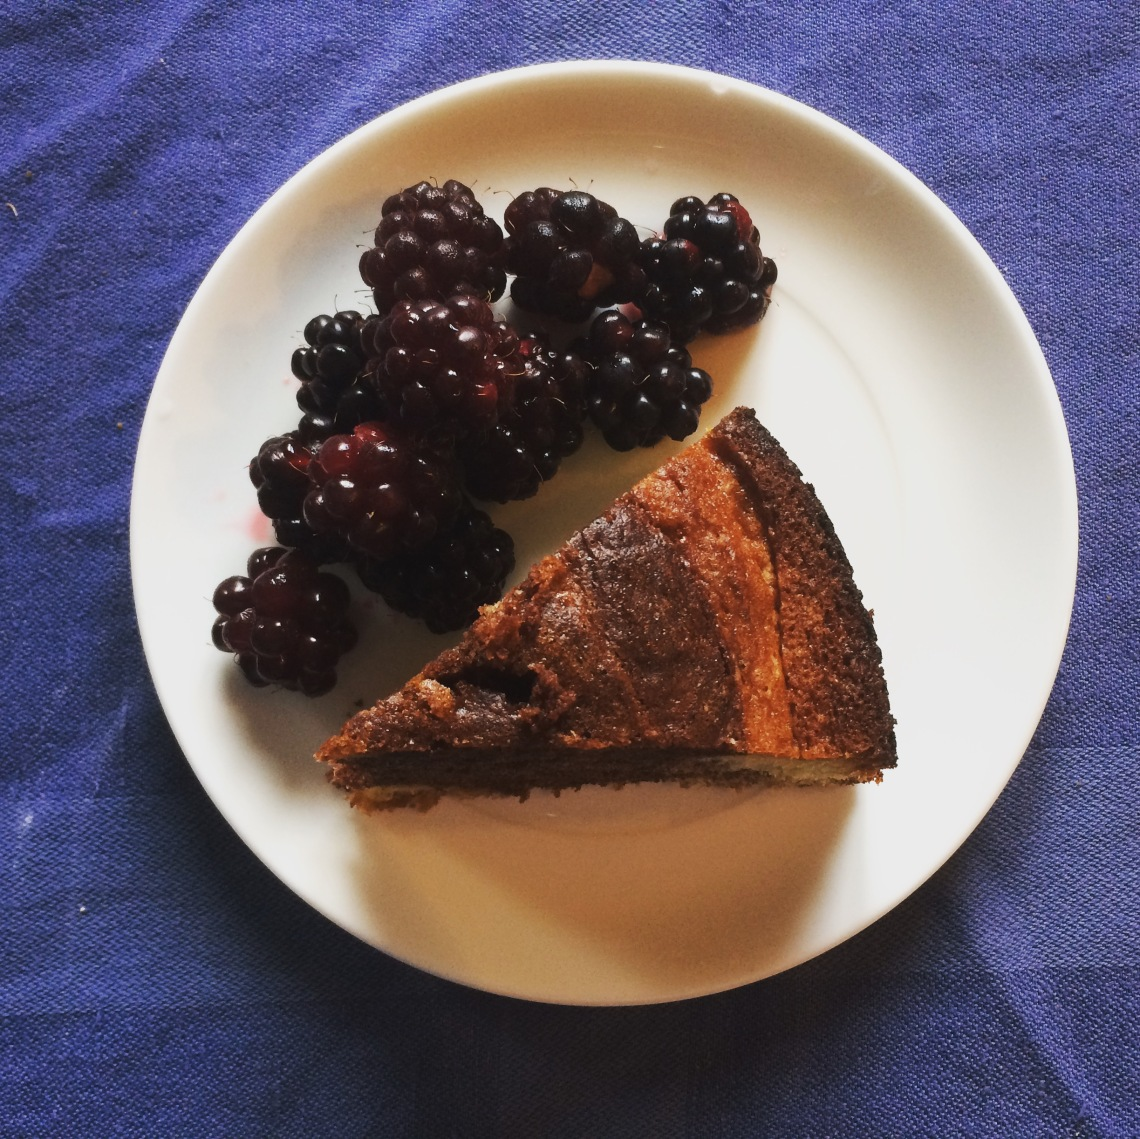 Blackberries with tiger or marble cake